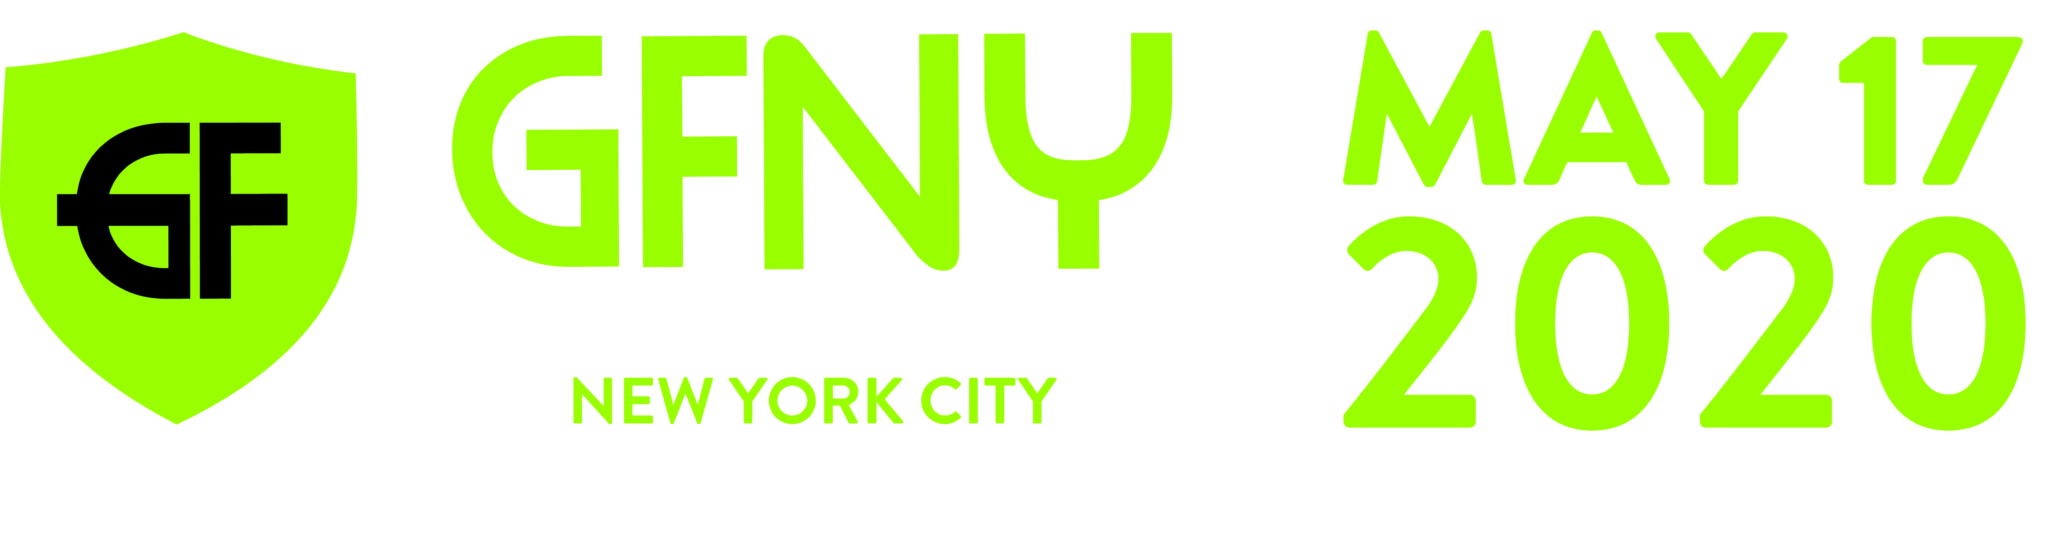 Calendario Uci 2020.Gfny World Championship New York City Gfny Cycling